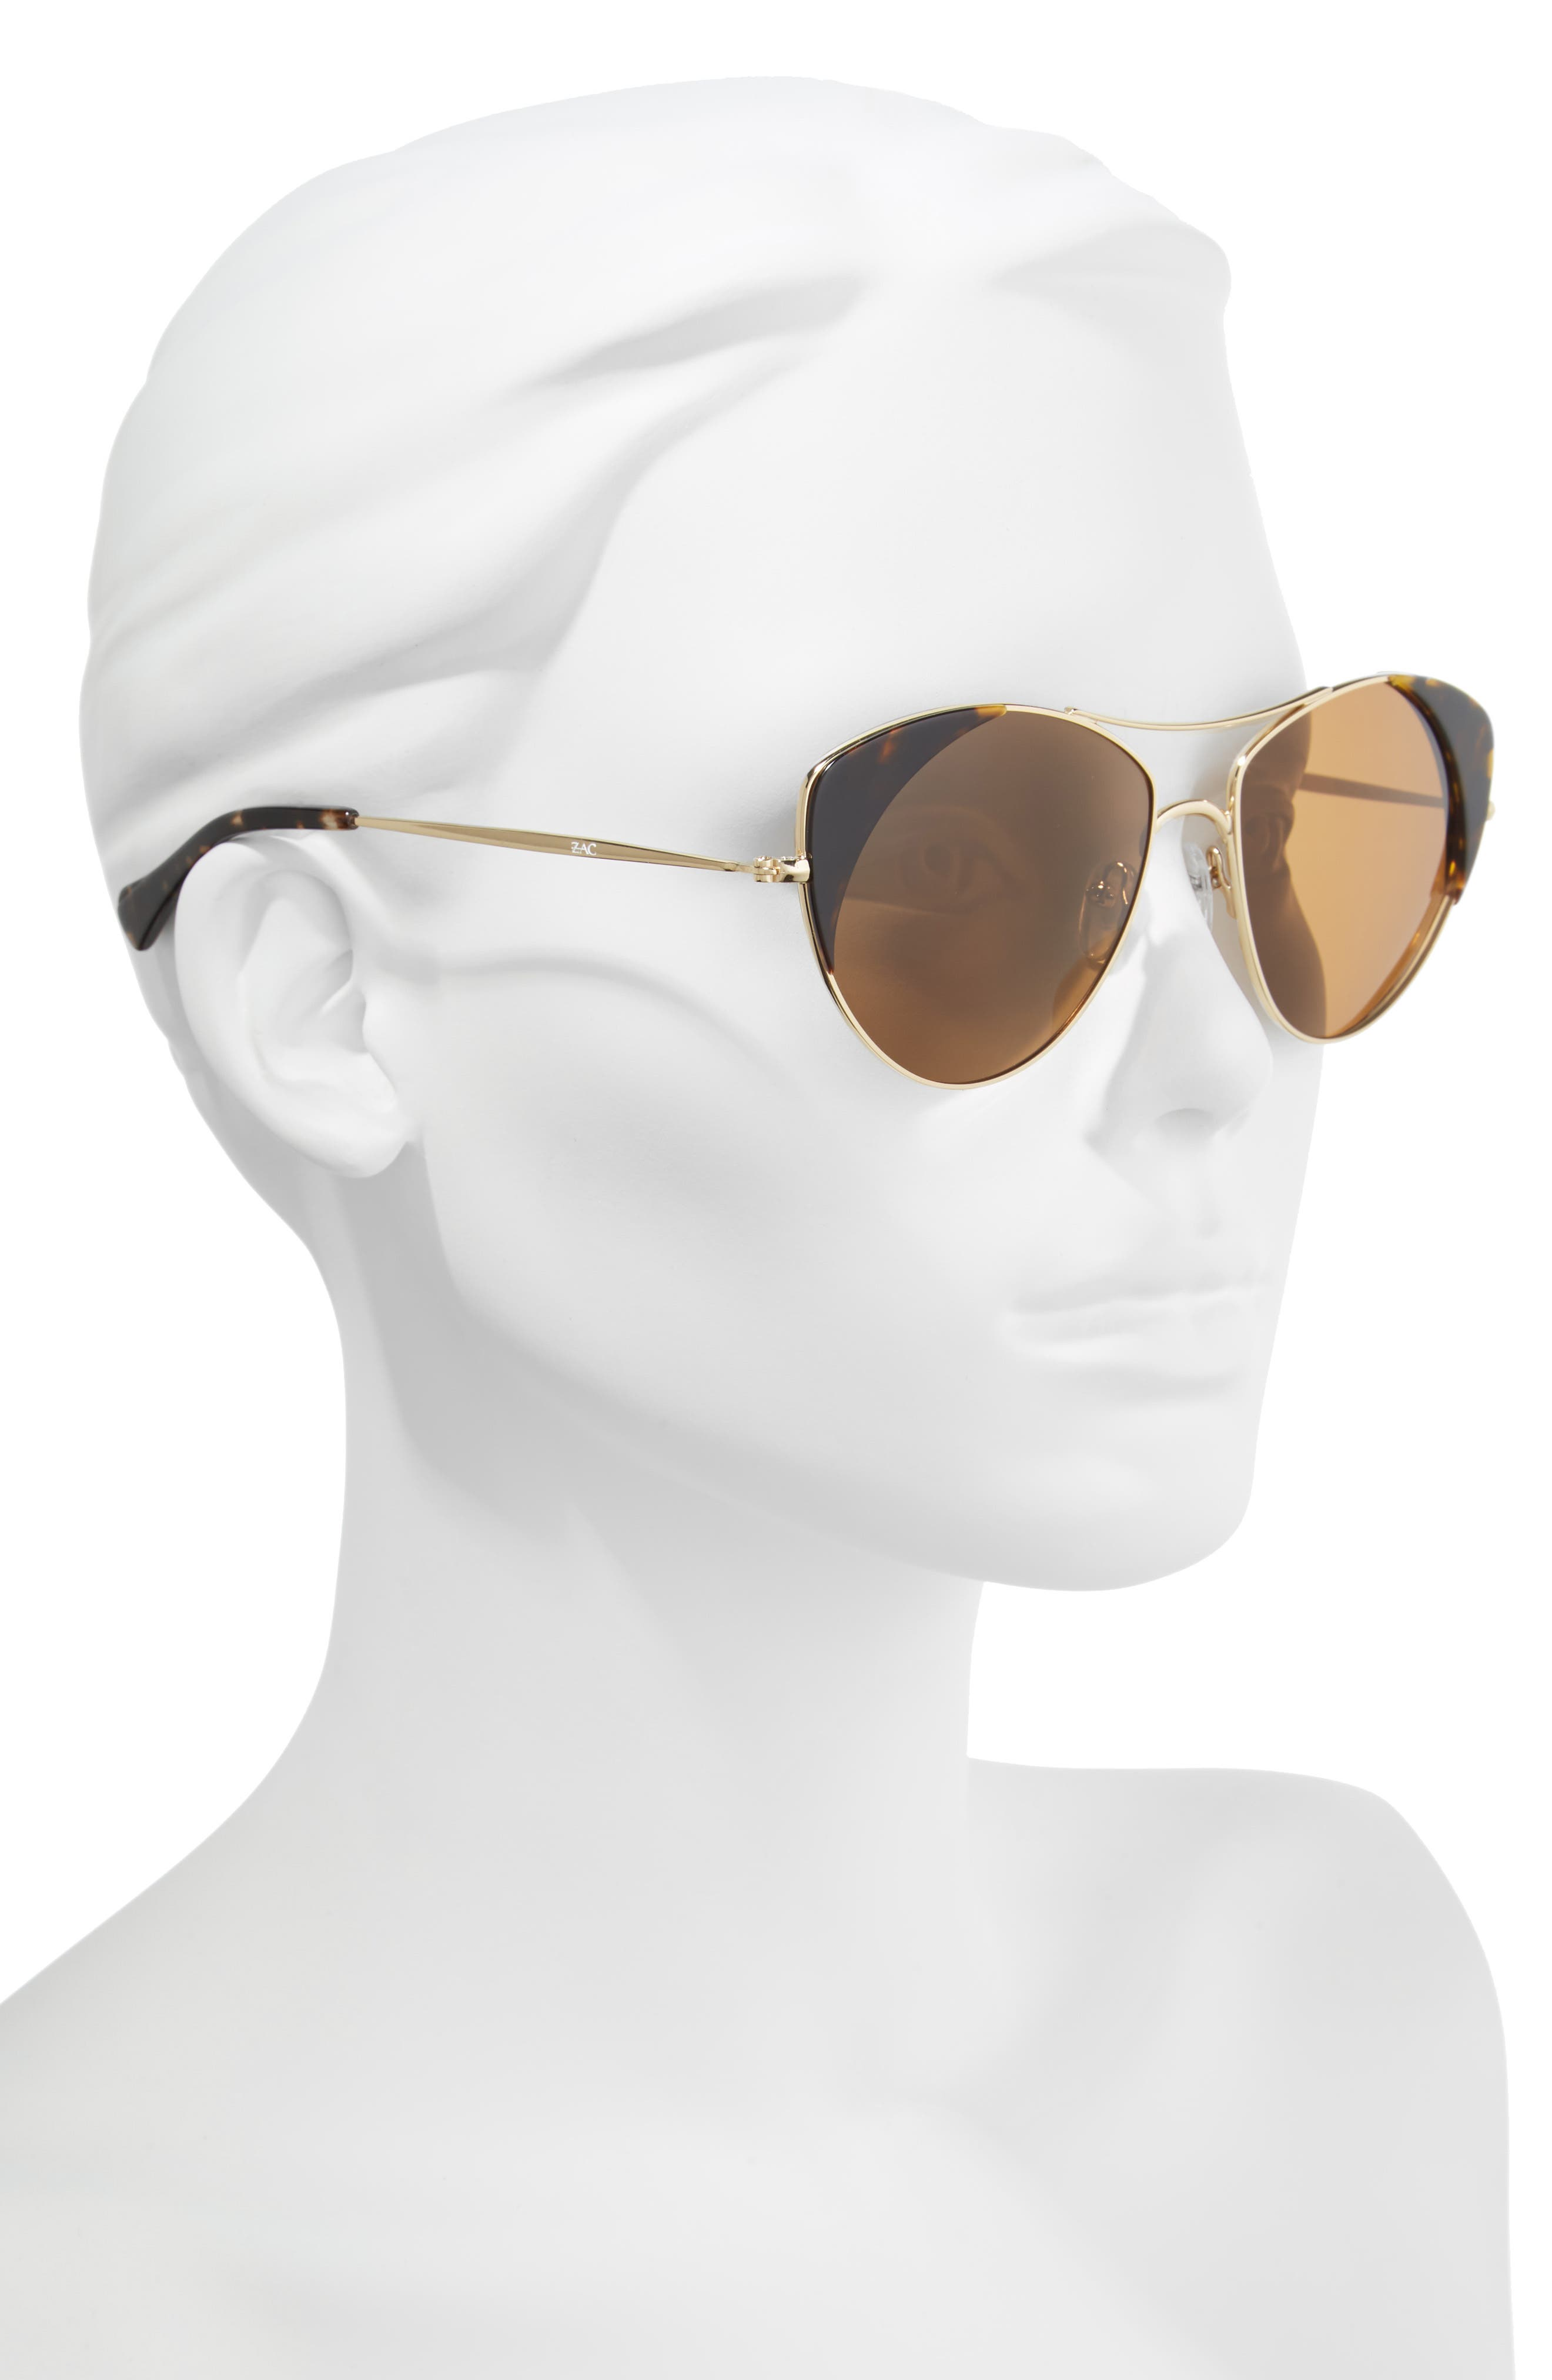 Birdie 59mm Polarized Aviator Sunglasses,                             Alternate thumbnail 2, color,                             TORTOISE POLAR/ BROWN